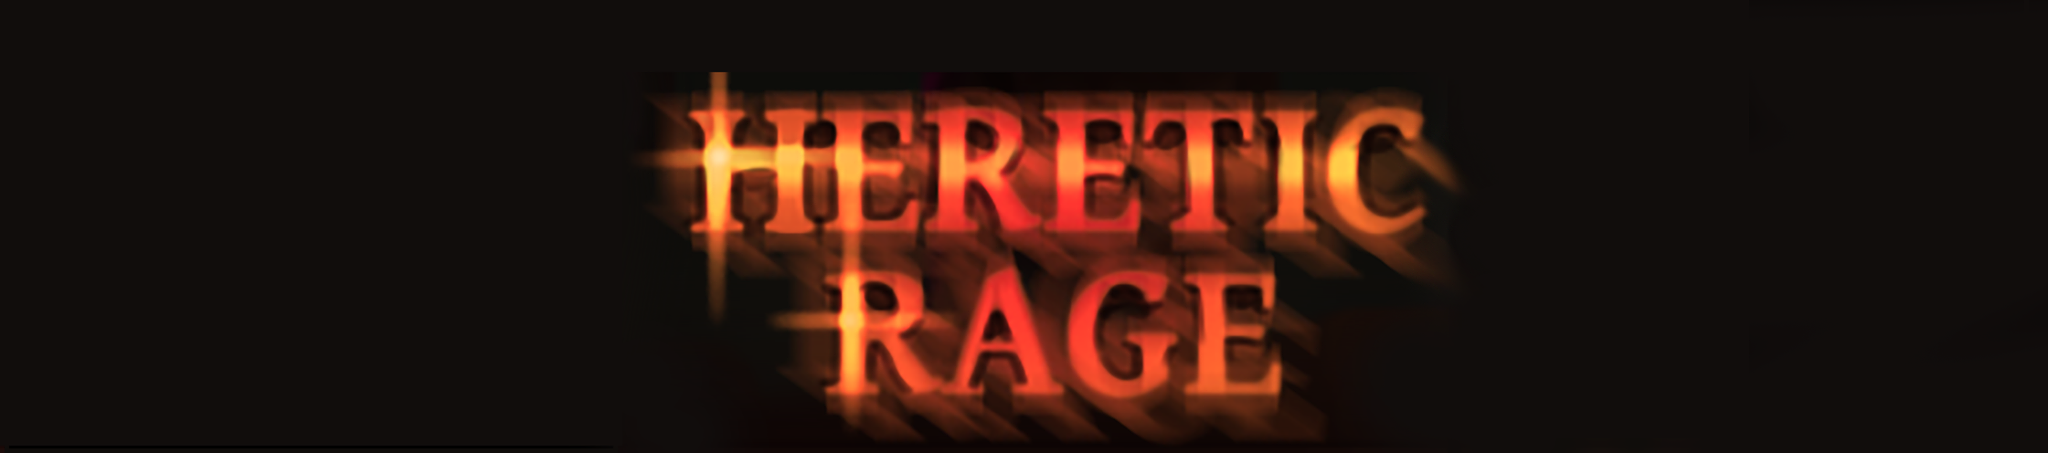 Heretic Rage